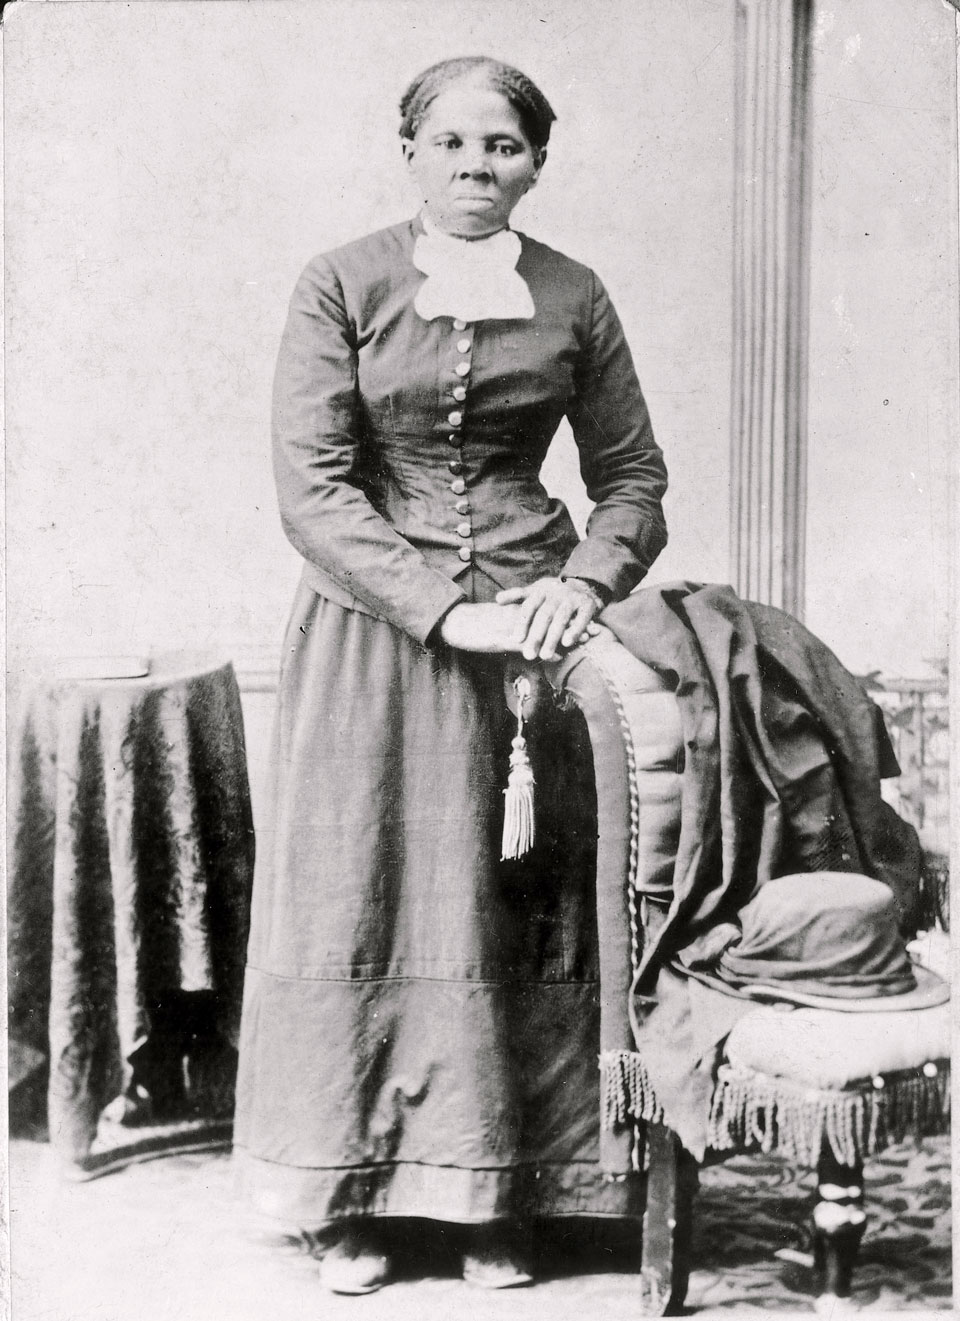 harriet tubman portrait harvey b lindsley library of congress med